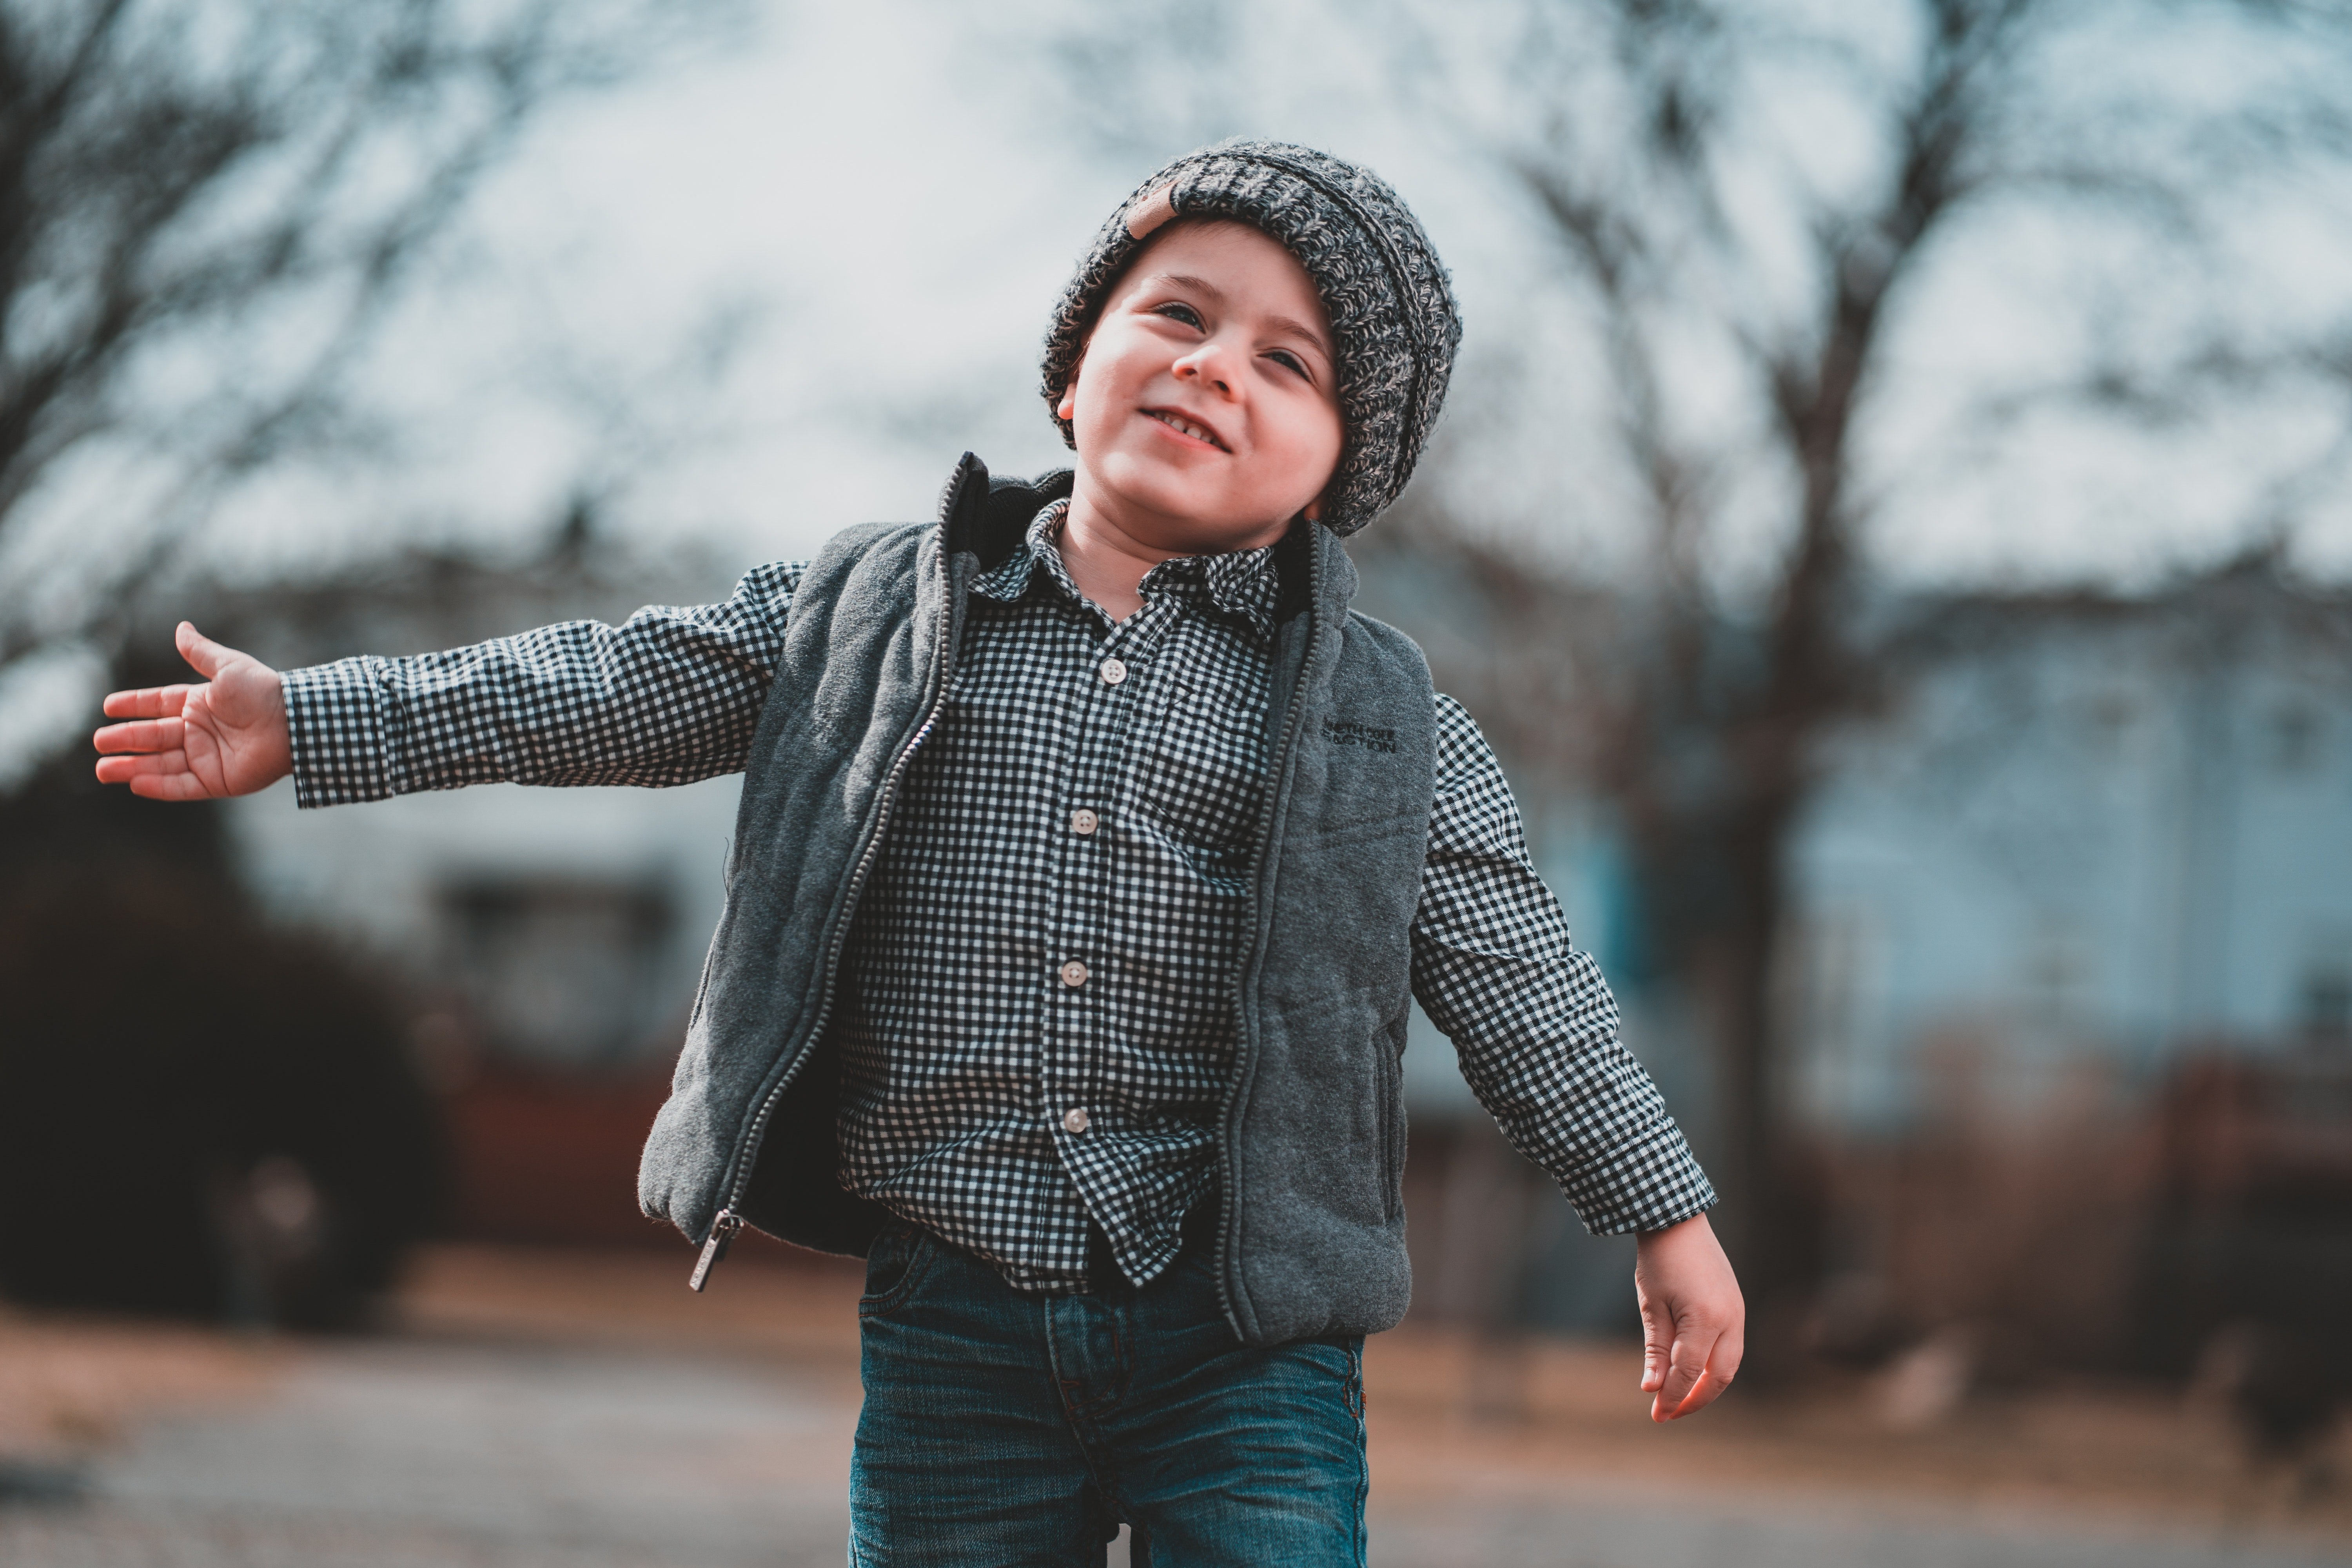 A young boy enjoying in the outdoor. | Source: Pexels